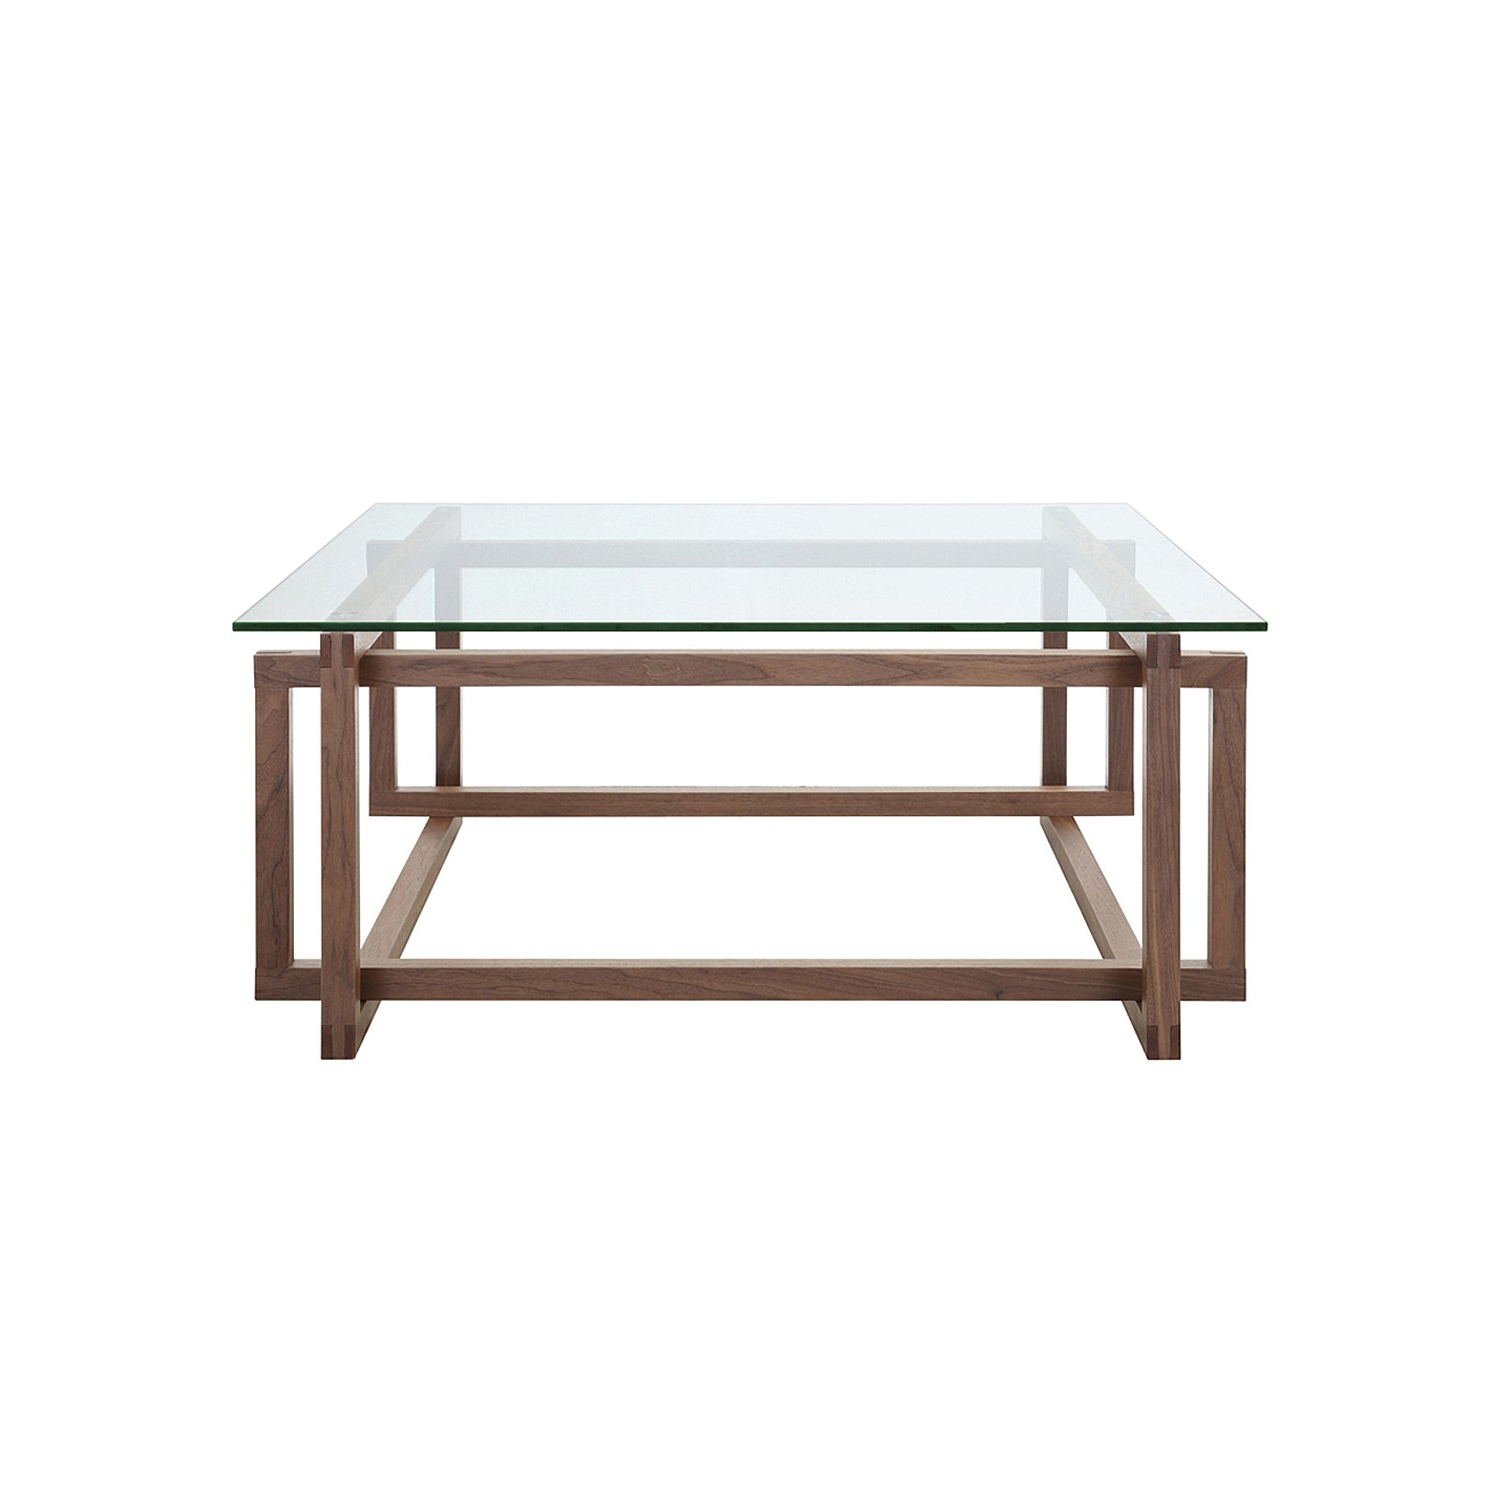 Kyra Console Tables Regarding Newest Living Room Furniture,view Range Online Now – Kyra Coffee Table (Gallery 3 of 20)